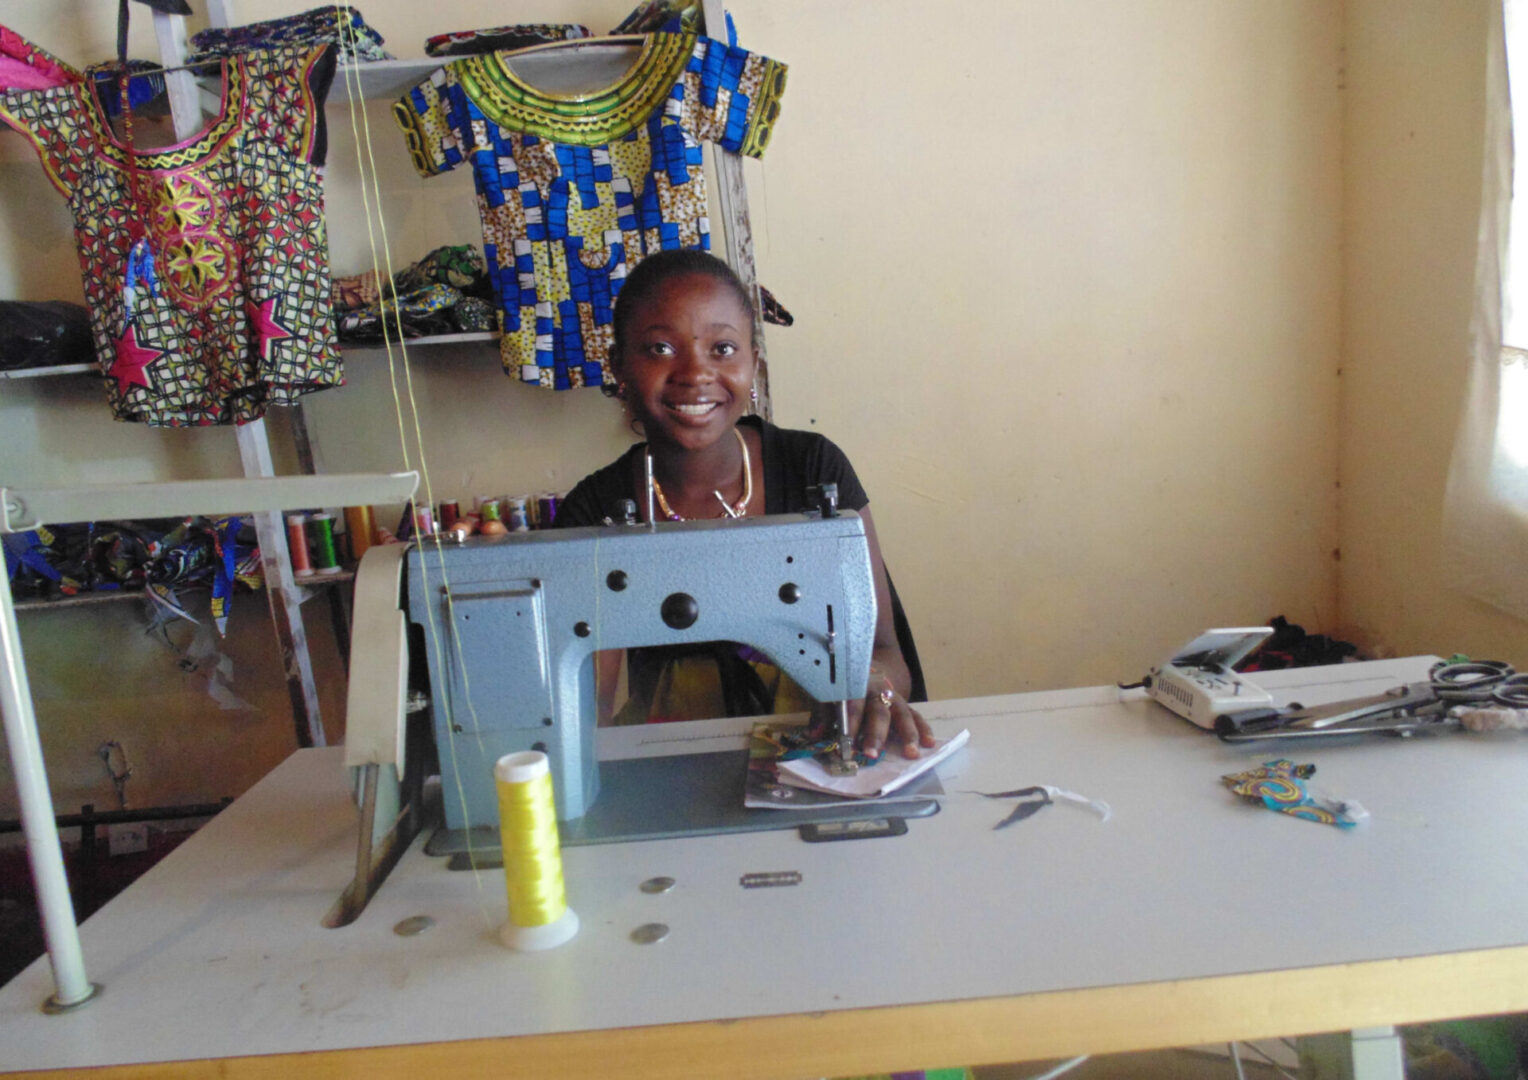 A woman working with a sewing machine